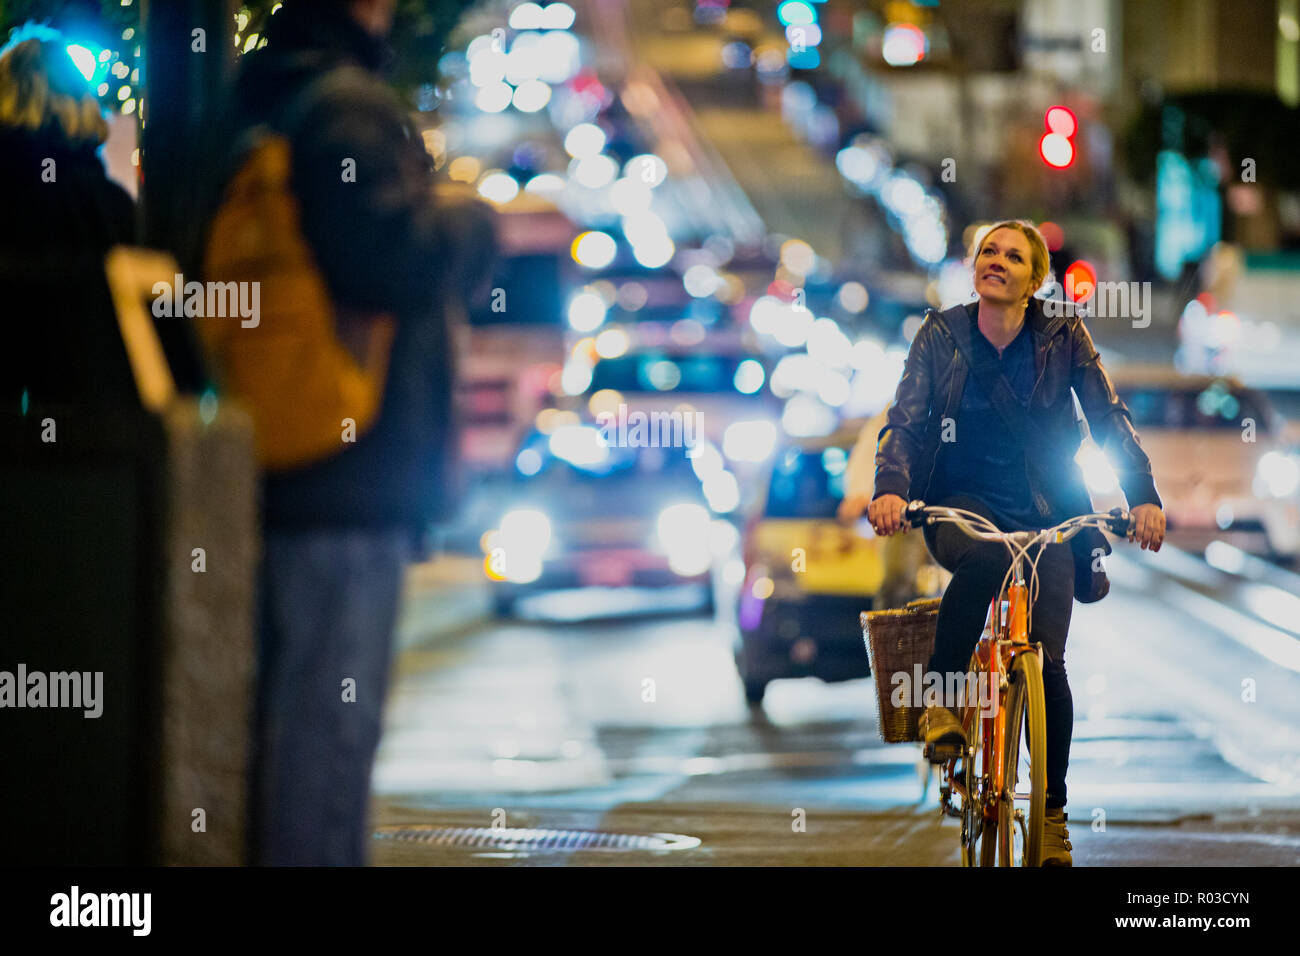 Smiling young woman riding her bicycle along a busy city road at night. Stock Photo